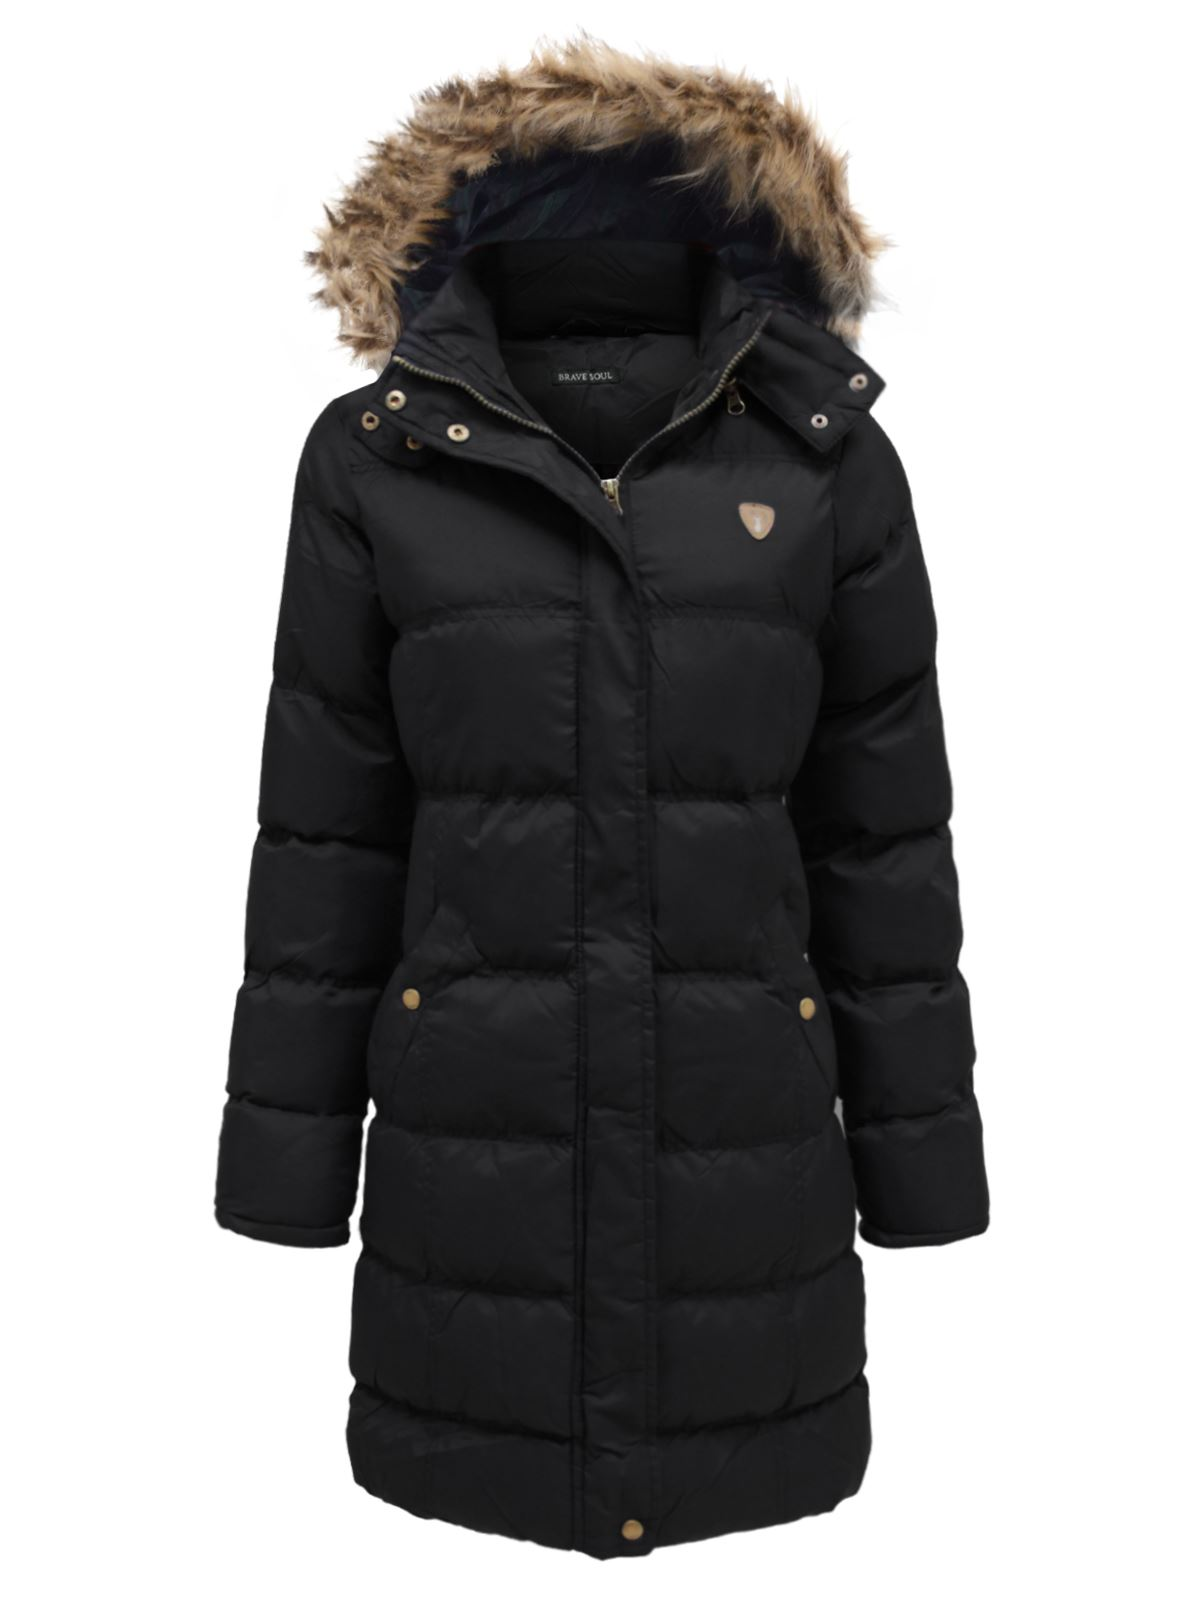 Winter Coat With Fur Hood Uk - Tradingbasis